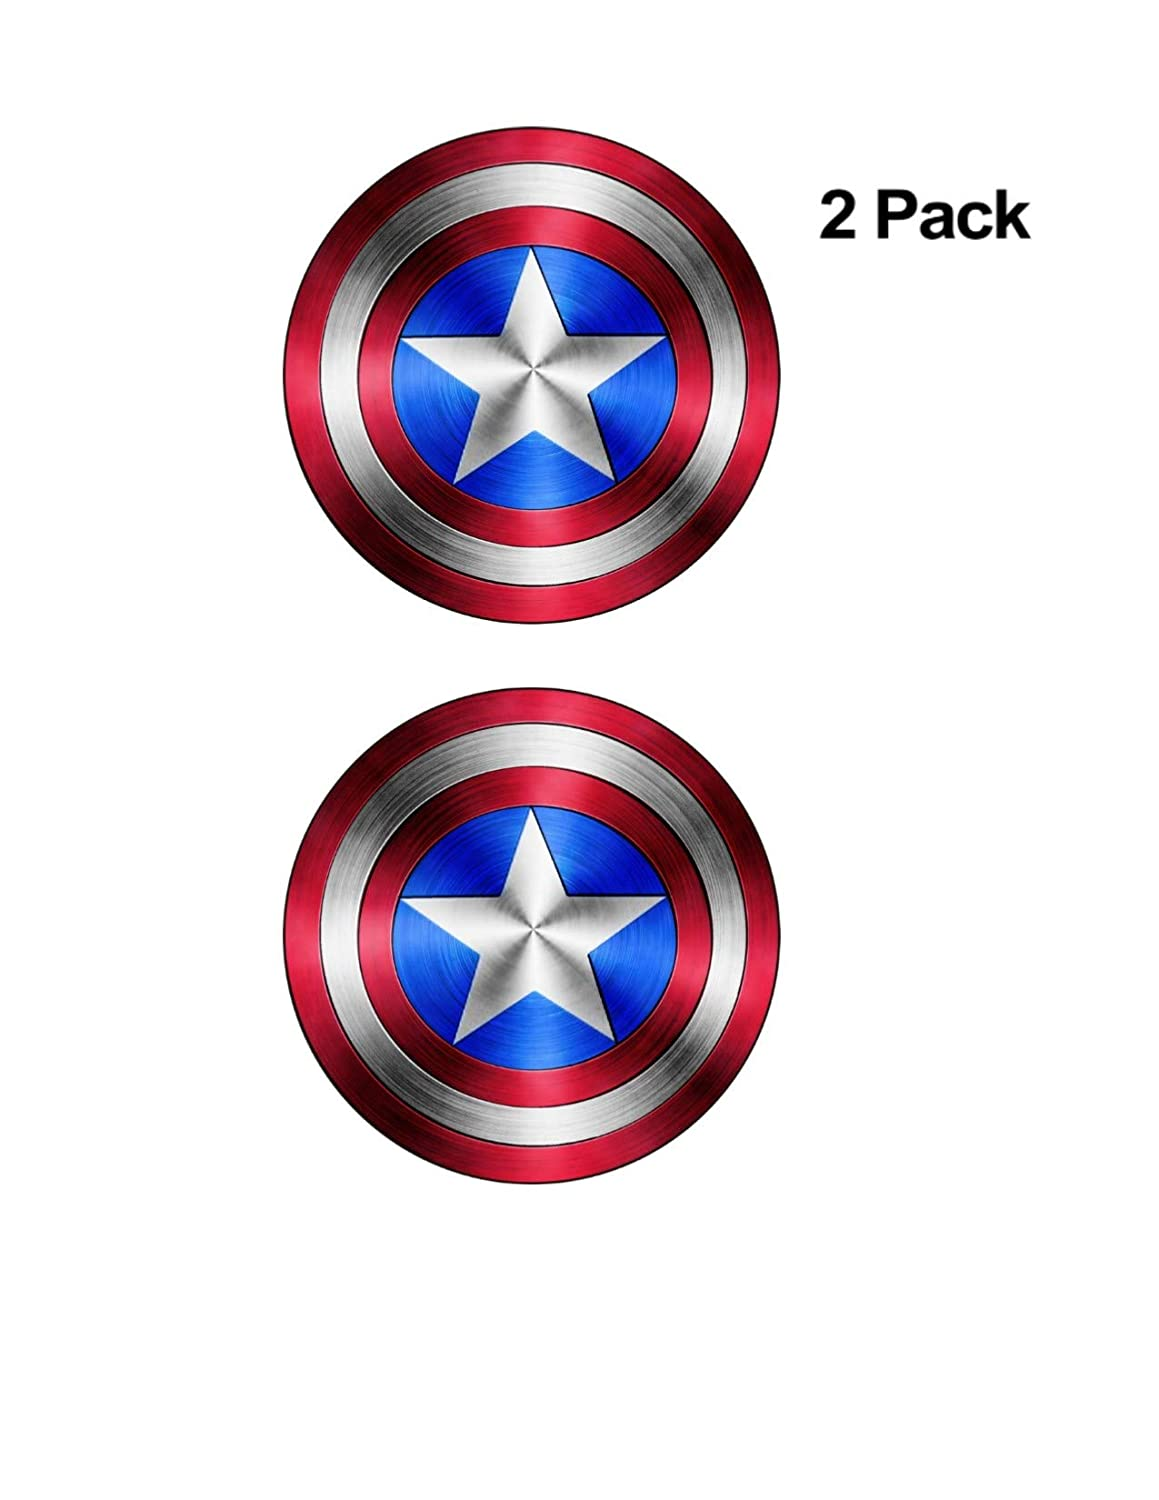 Foxy21 Captain America Shield Vinyl Sticker DecalSIZES 4 x 4